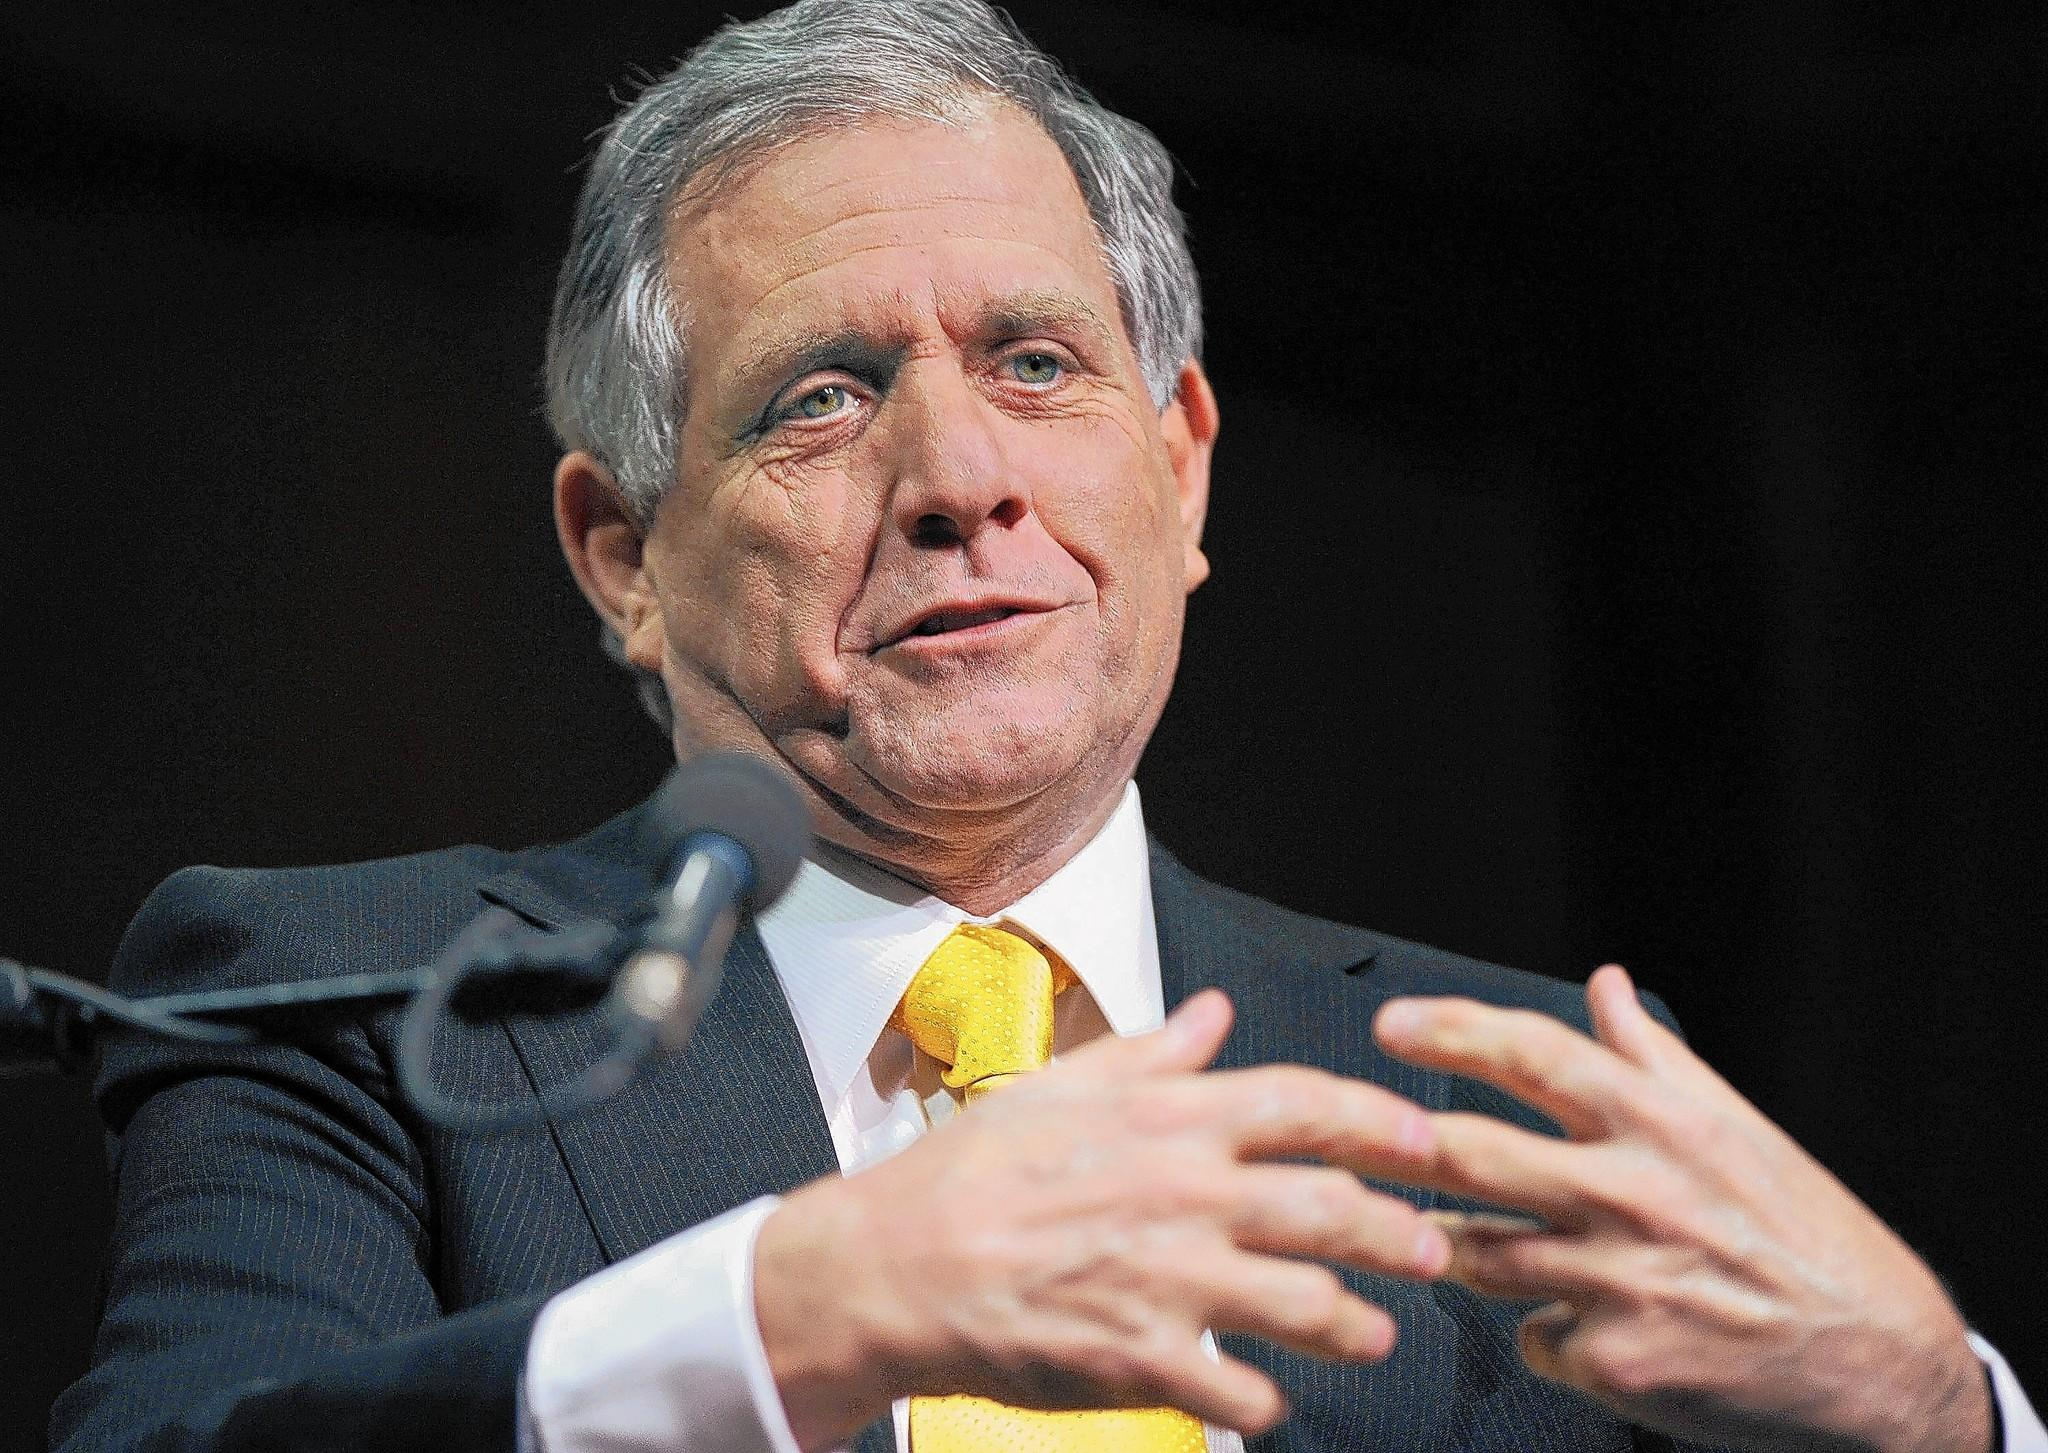 CBS Chief Executive Leslie Moonves is the highest-paid CEO in the media industry.